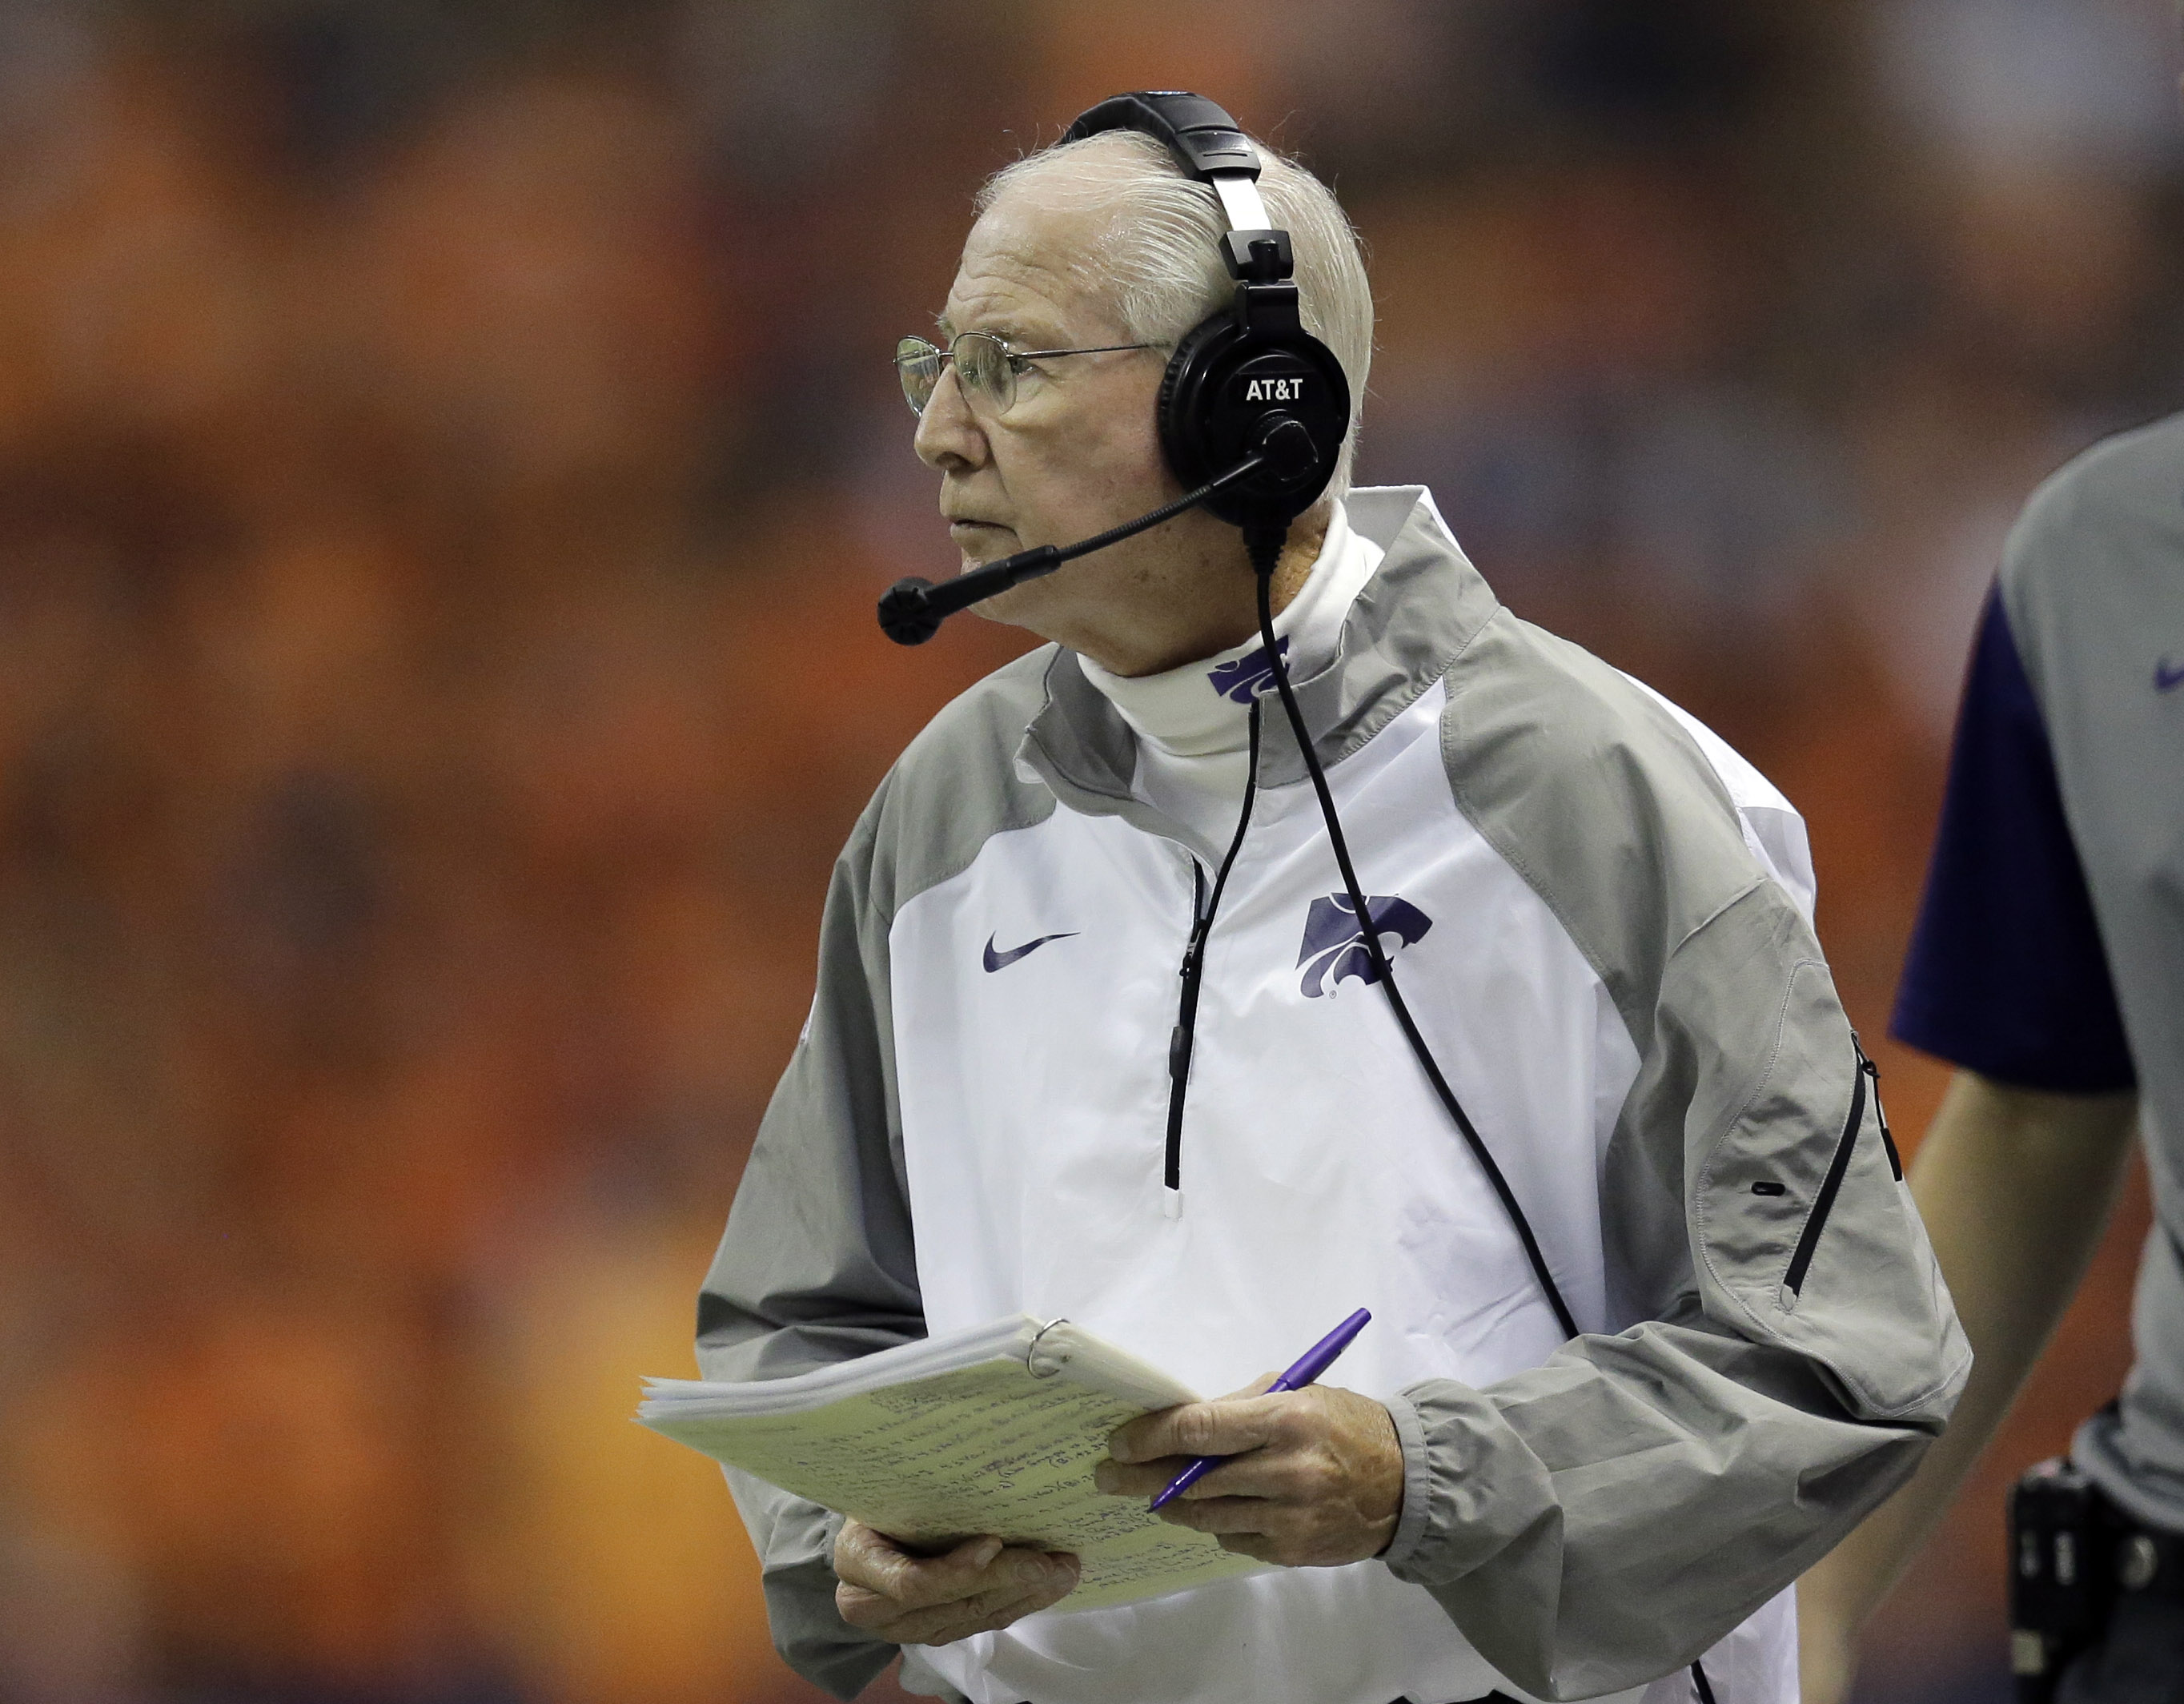 Kansas State Wildcats head coach Bill Snyder watches from the sideline during the first half of an NCAA college football game against UTSA, Saturday, Sept. 12, 2015, in San Antonio. (AP Photo/Eric Gay)